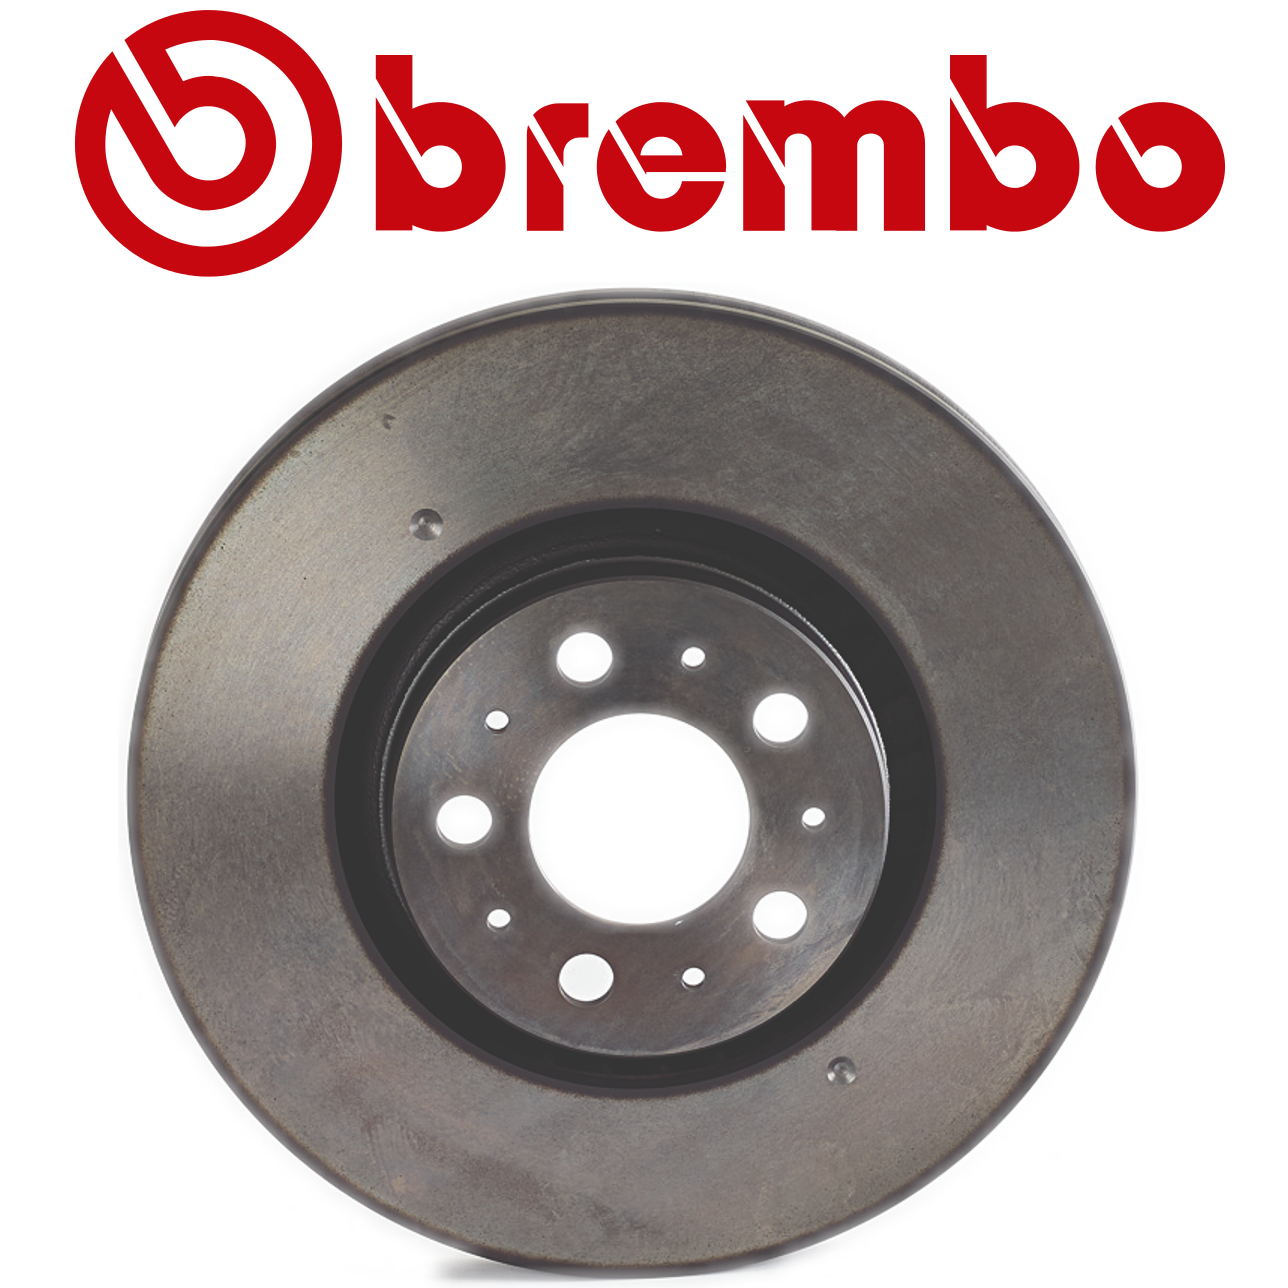 For Volvo C70 Ford Pair Set of 2 Front Brake Disc Rotors Vent 300mm Coat Brembo